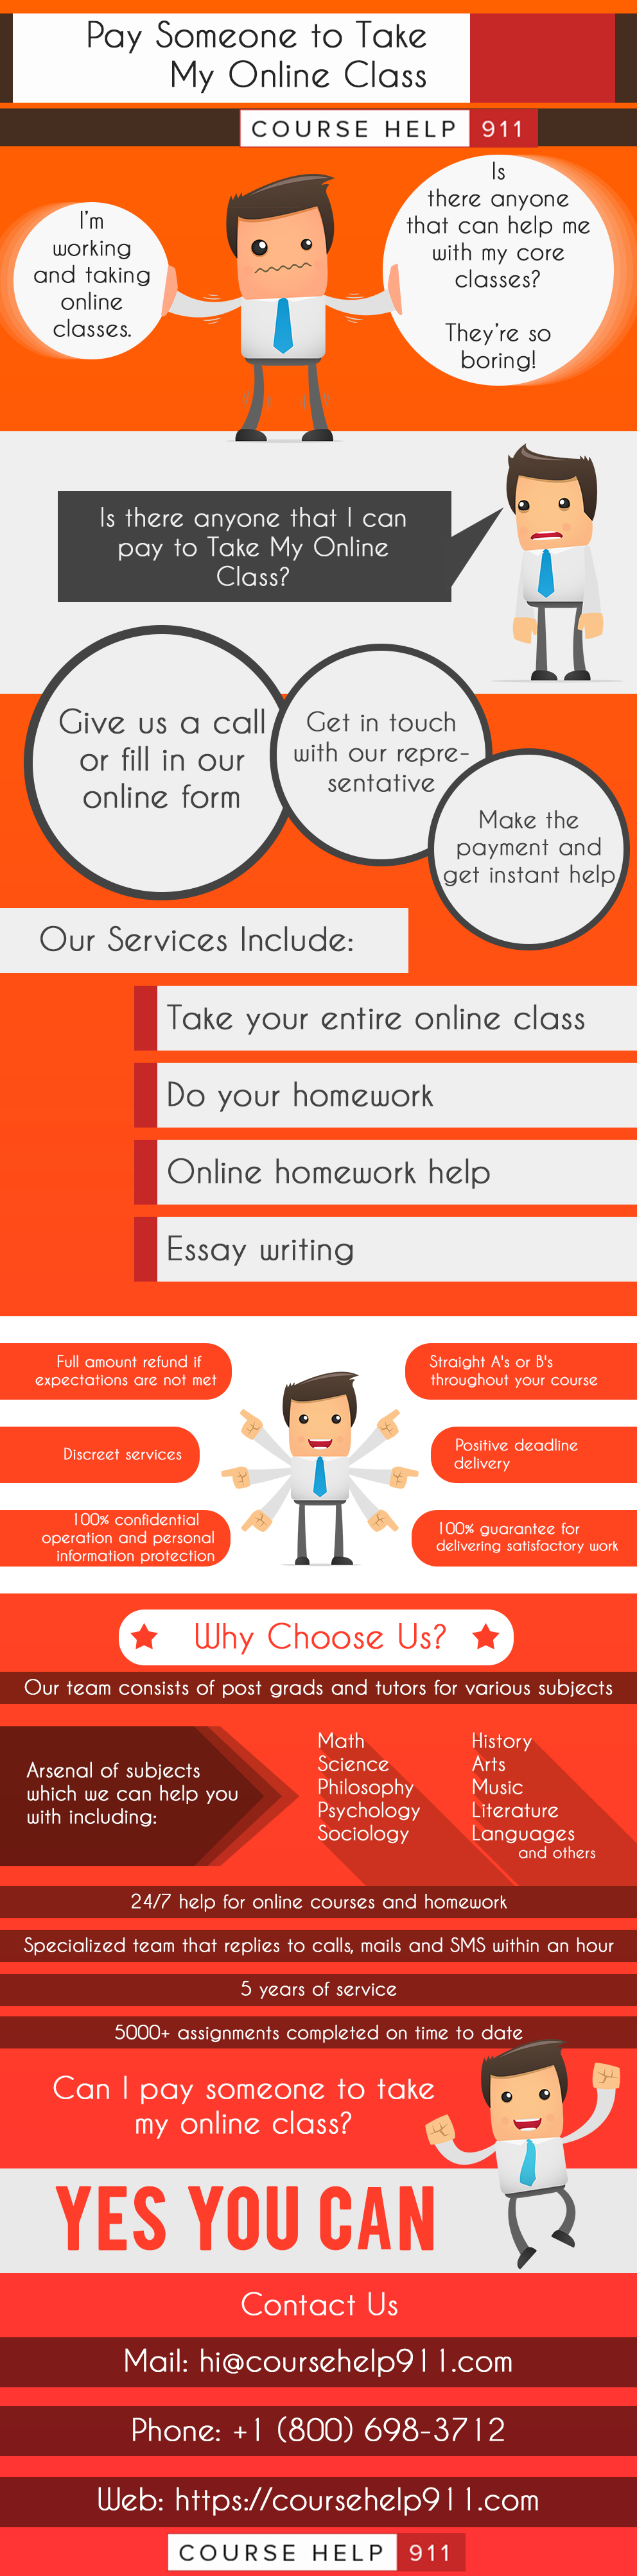 essay helping someone Essay on helping others people are selfish by nature, however we have demonstrated times of great sacrifice when such sacrifice is needed helping other people is an act most of us perform without even thinking about it.